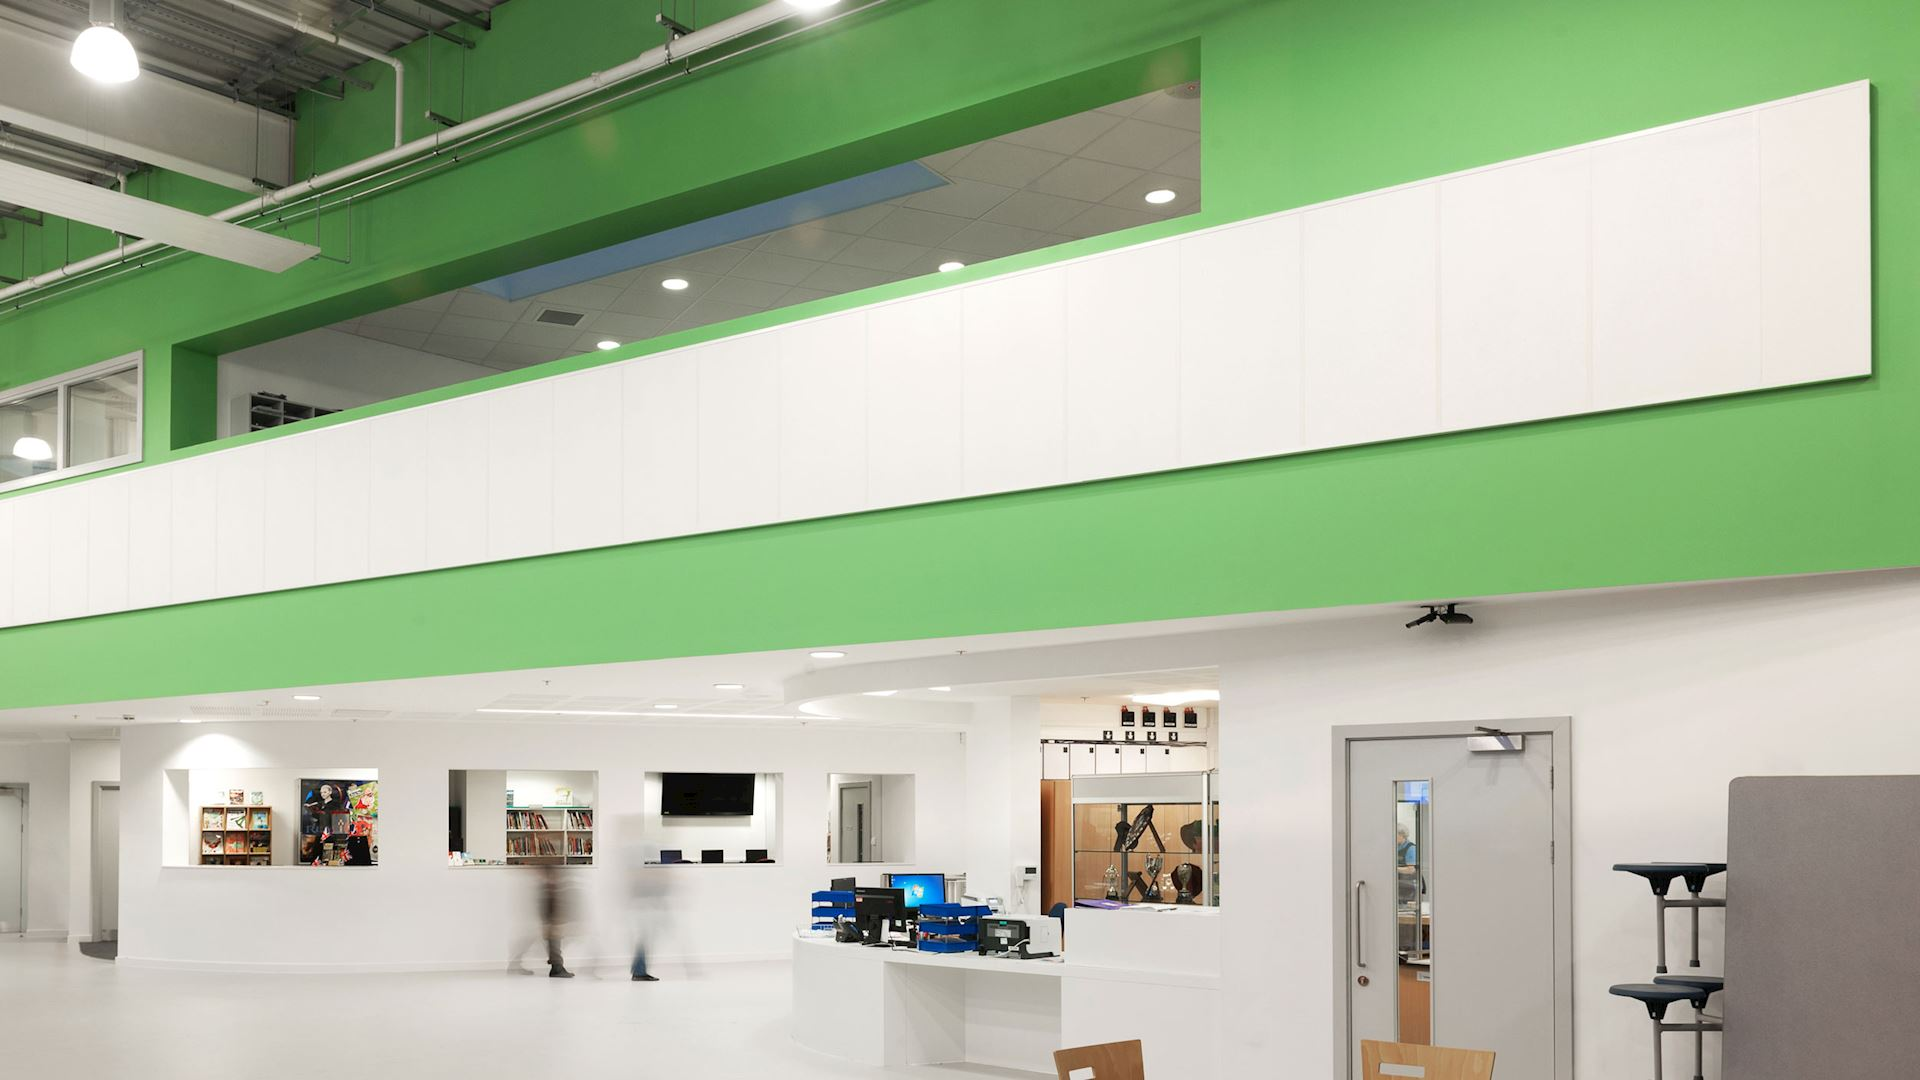 Acoustic wall panels in school classrooms and communal spaces with Rockfon Scholar wall panel